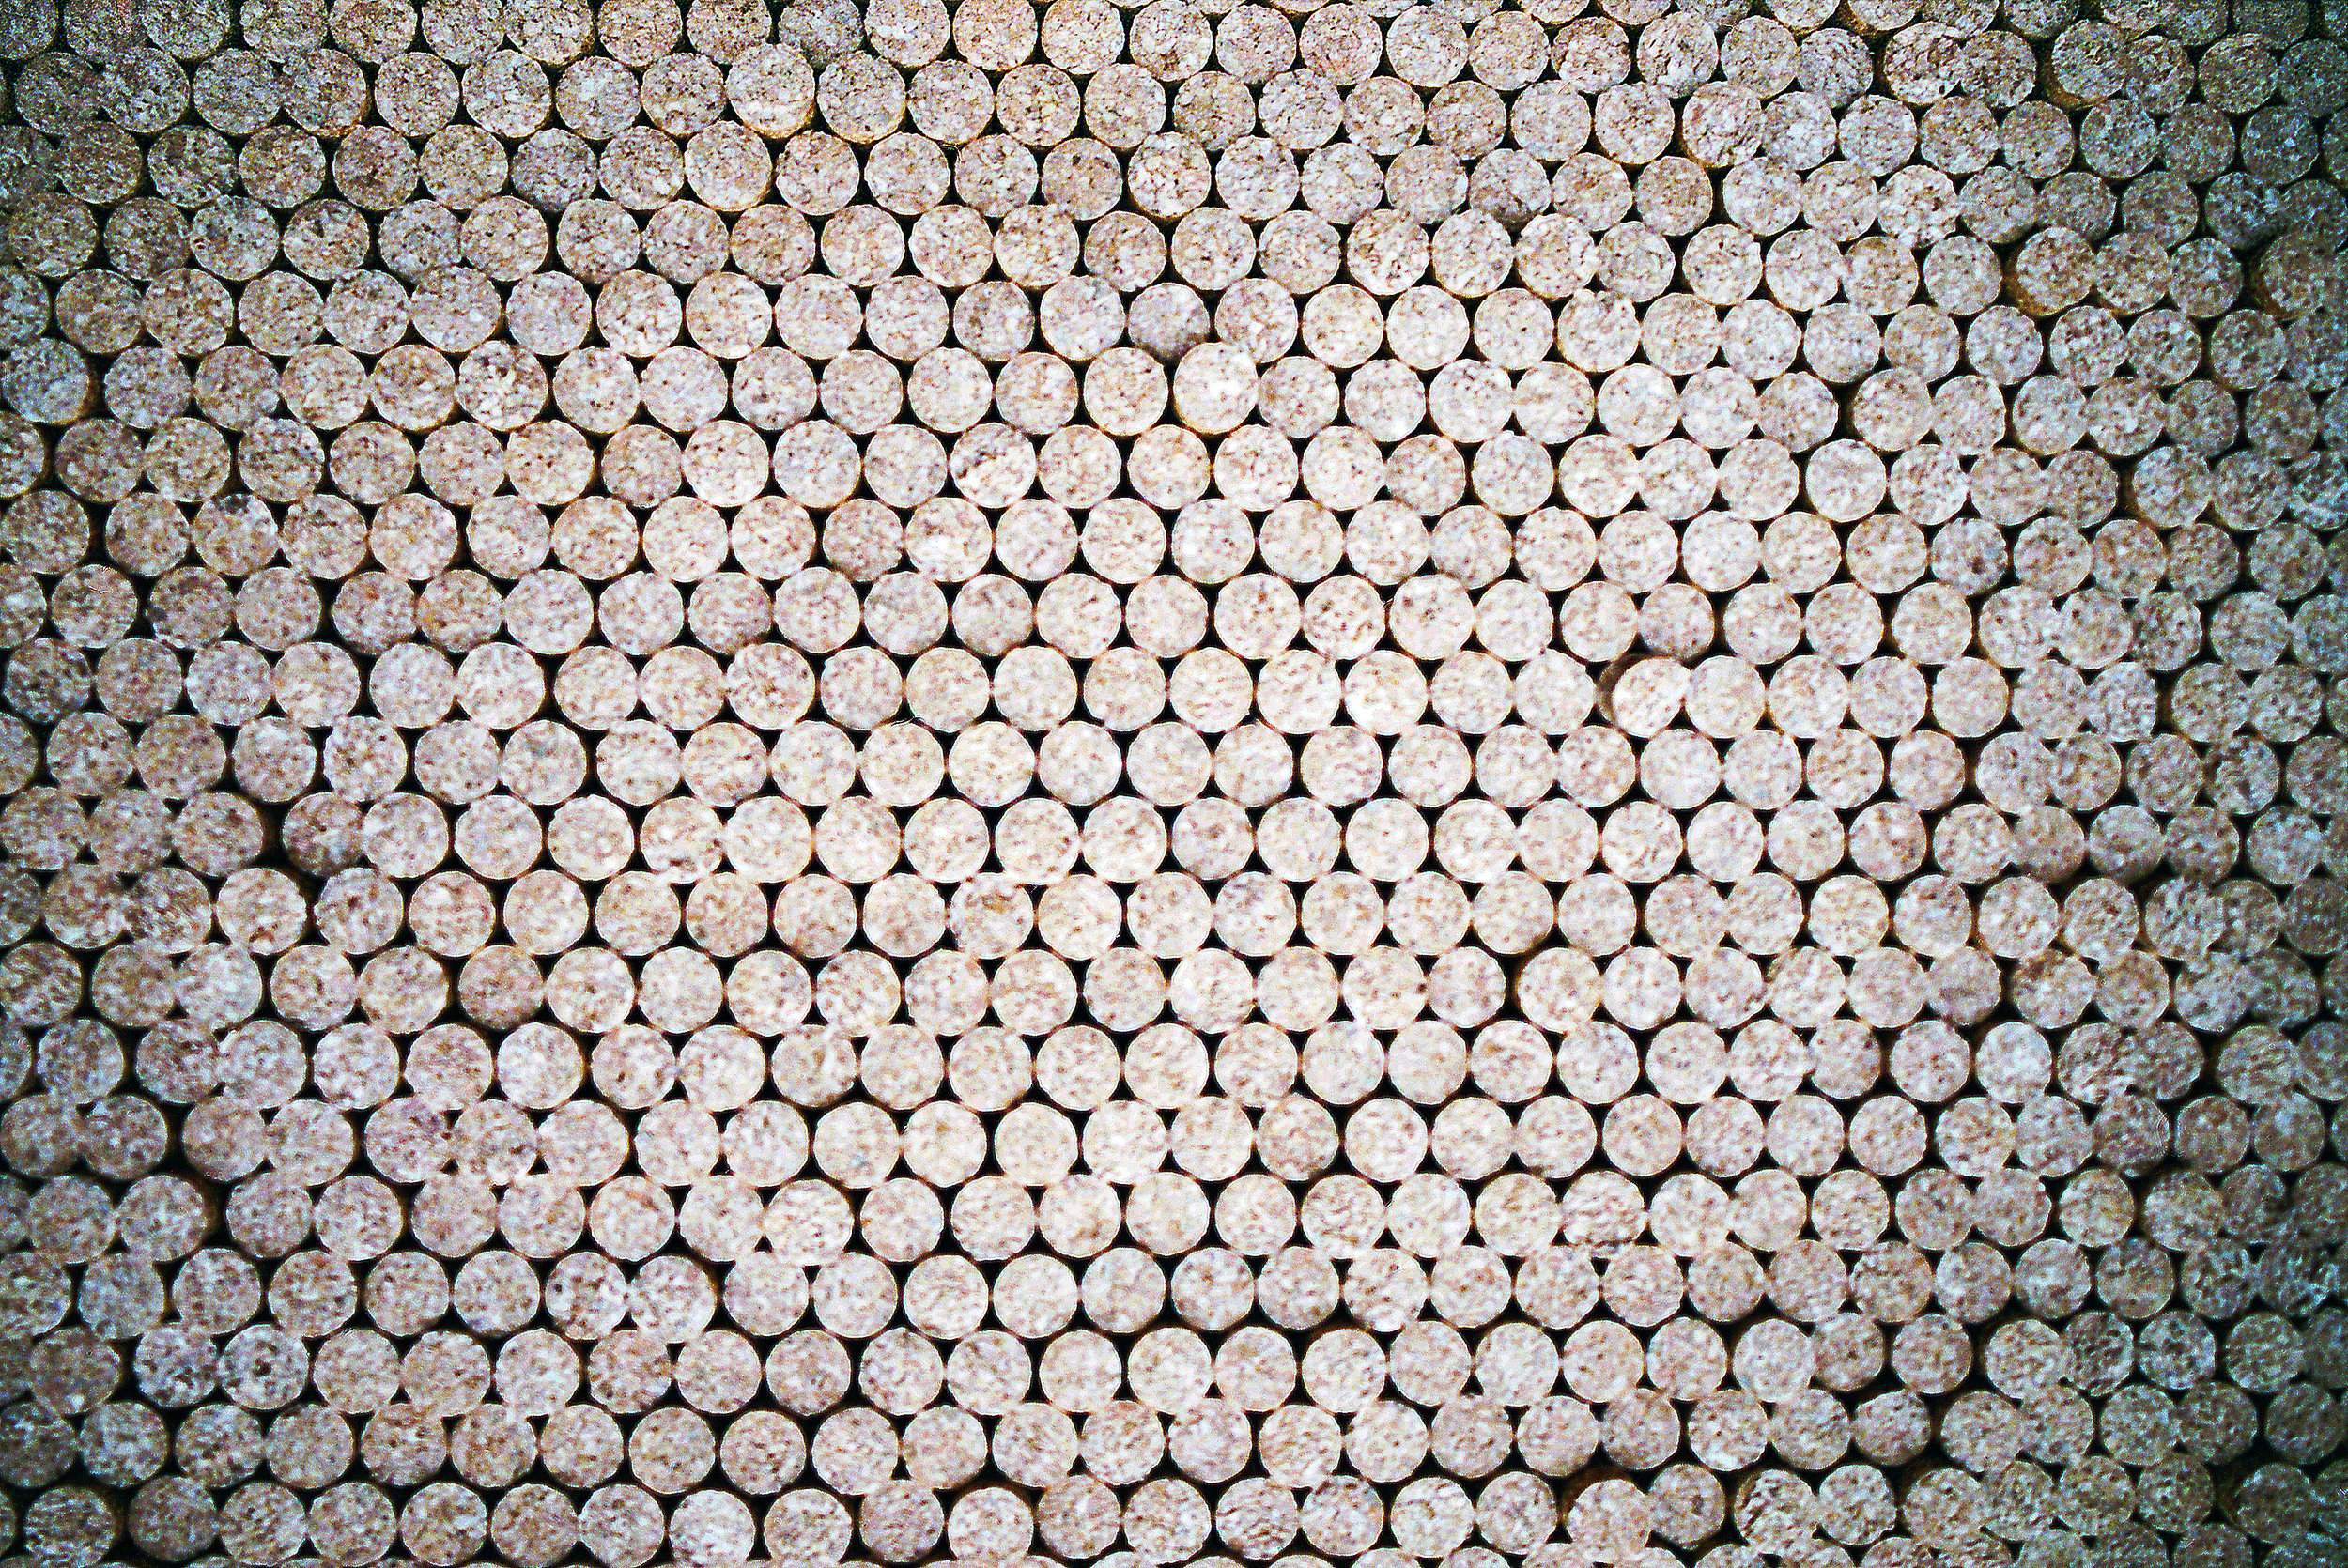 Billions of cork stoppers are produced each year—and making sure that they are not tainted is an important goal of cork sellers. After the cutting process in the fields the bark is transported to nearby factories. The process of transforming the bark into cork for spirits is a technically challenging one that employs many workers in the region. Each piece of bark is tagged and then analyzed to make sure that there are no impurities in the cork that would result in tainted wine.